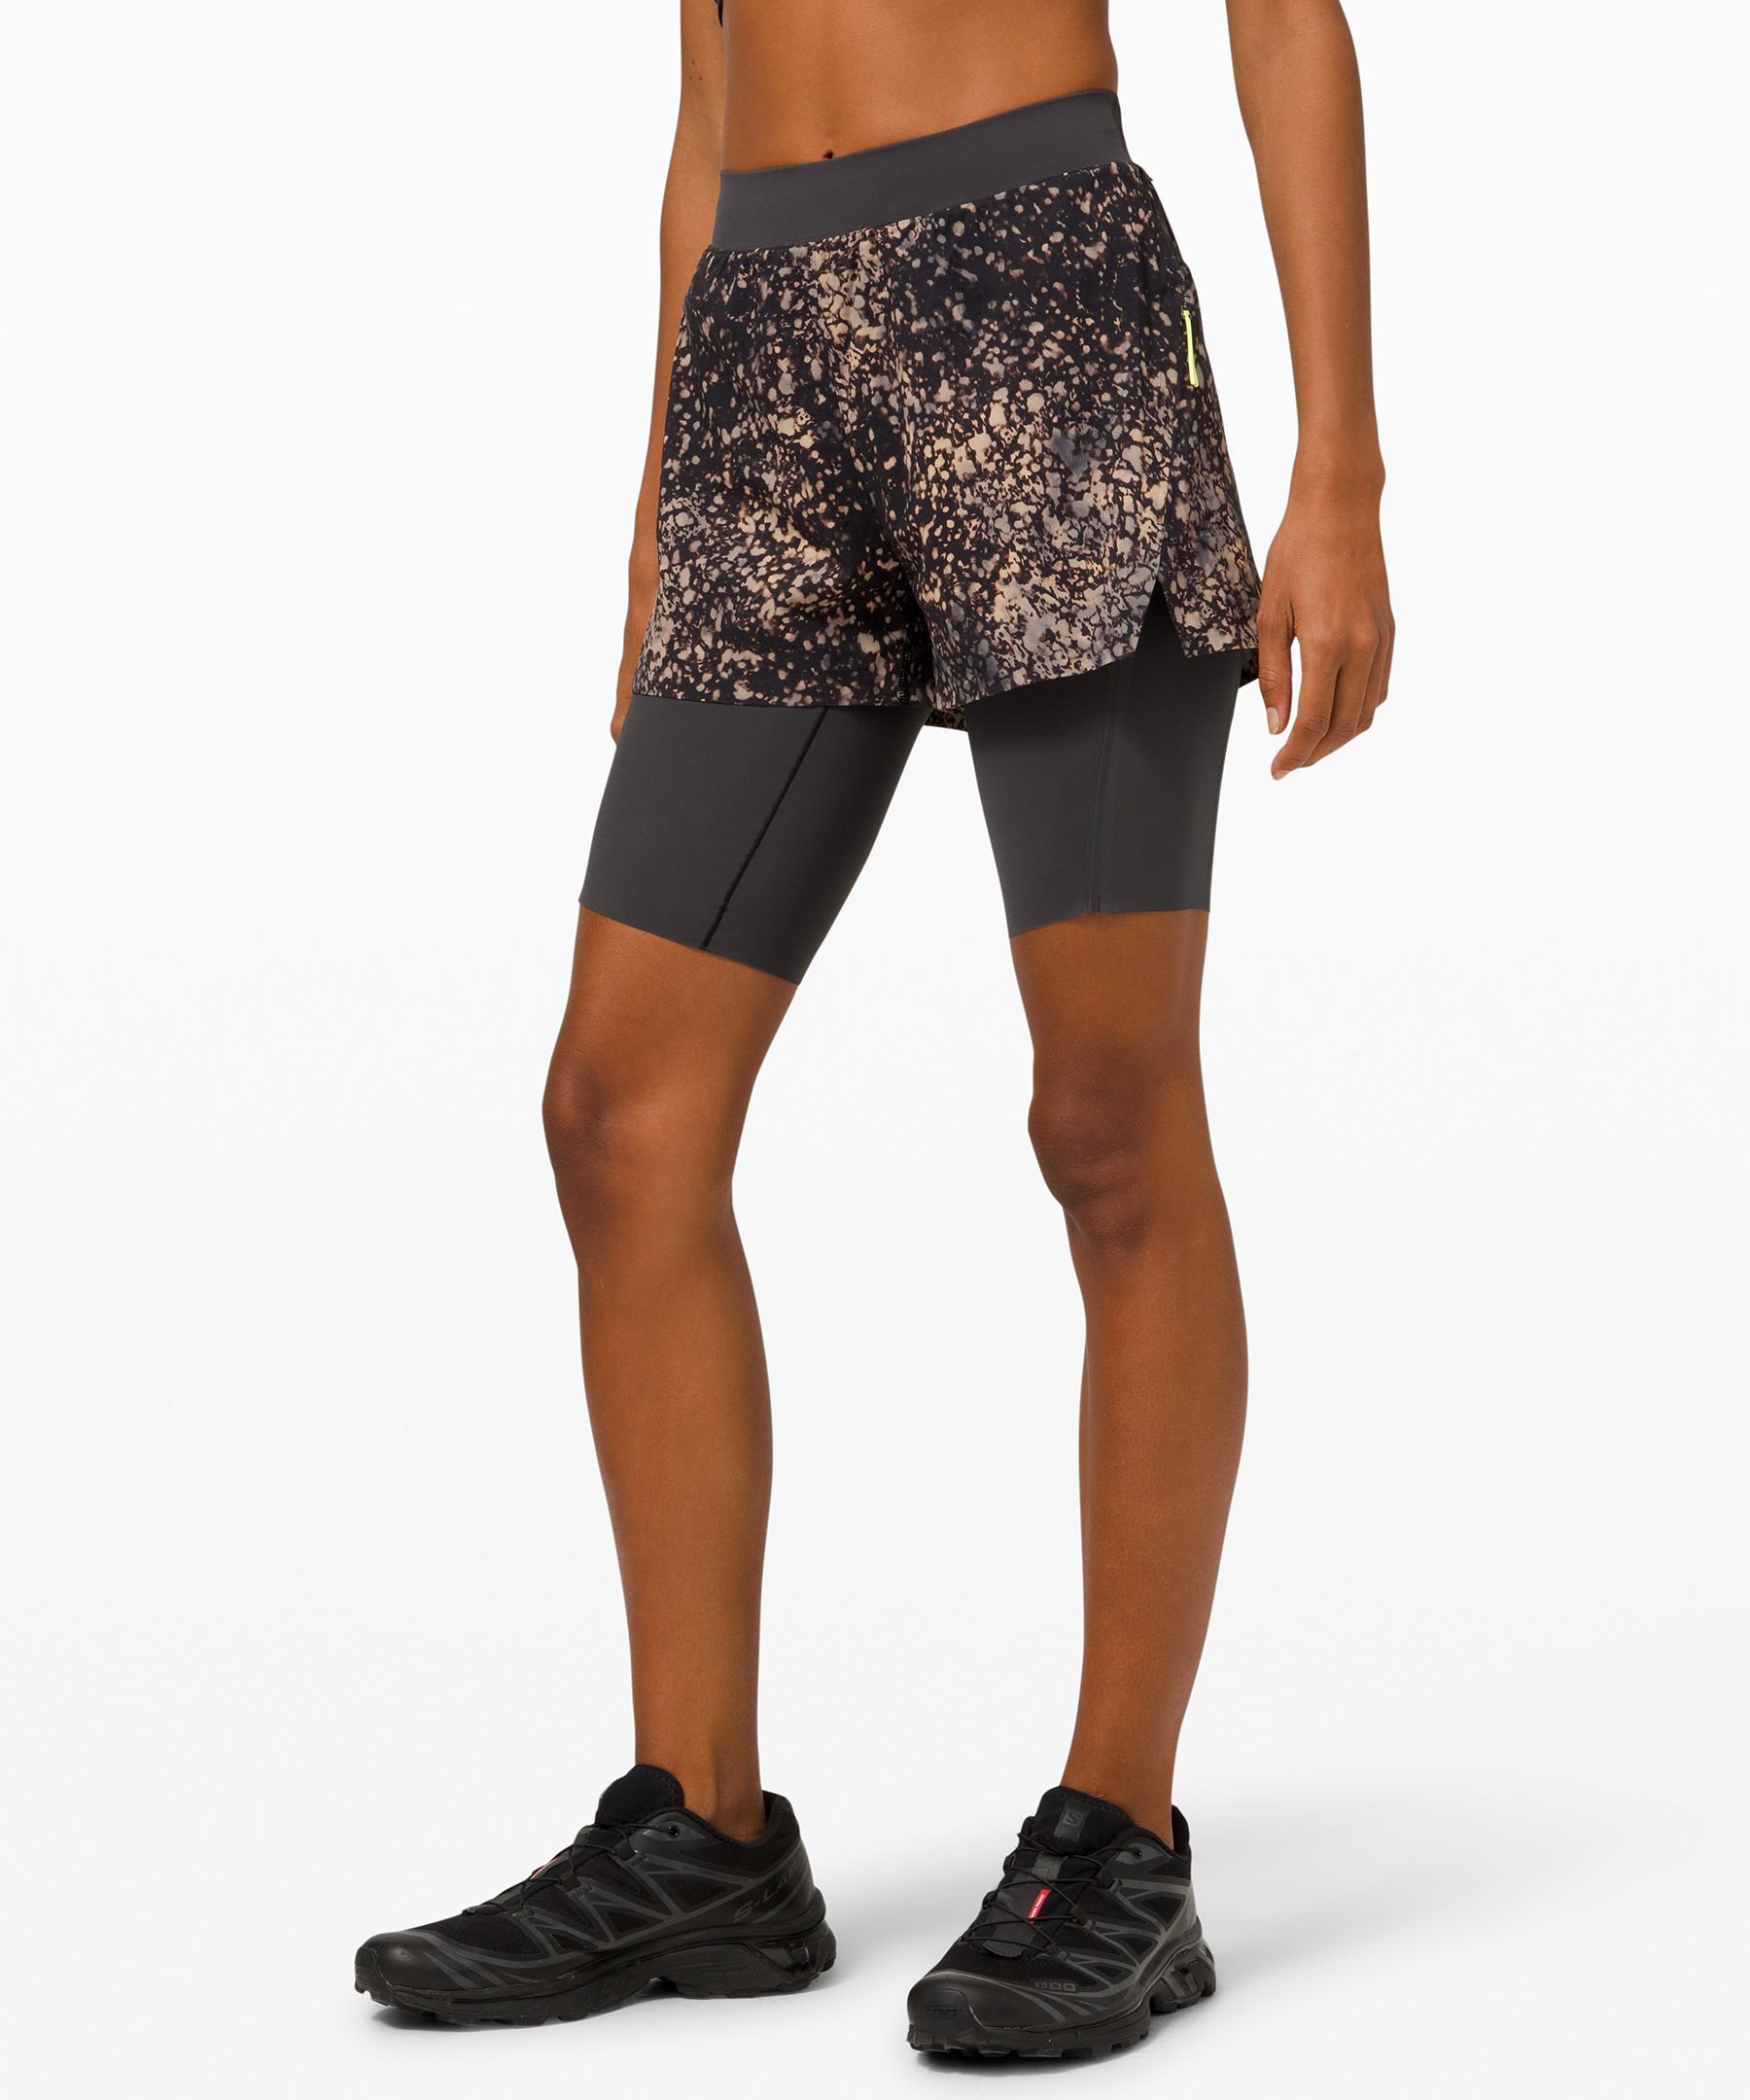 Alacer Short *lululemon lab